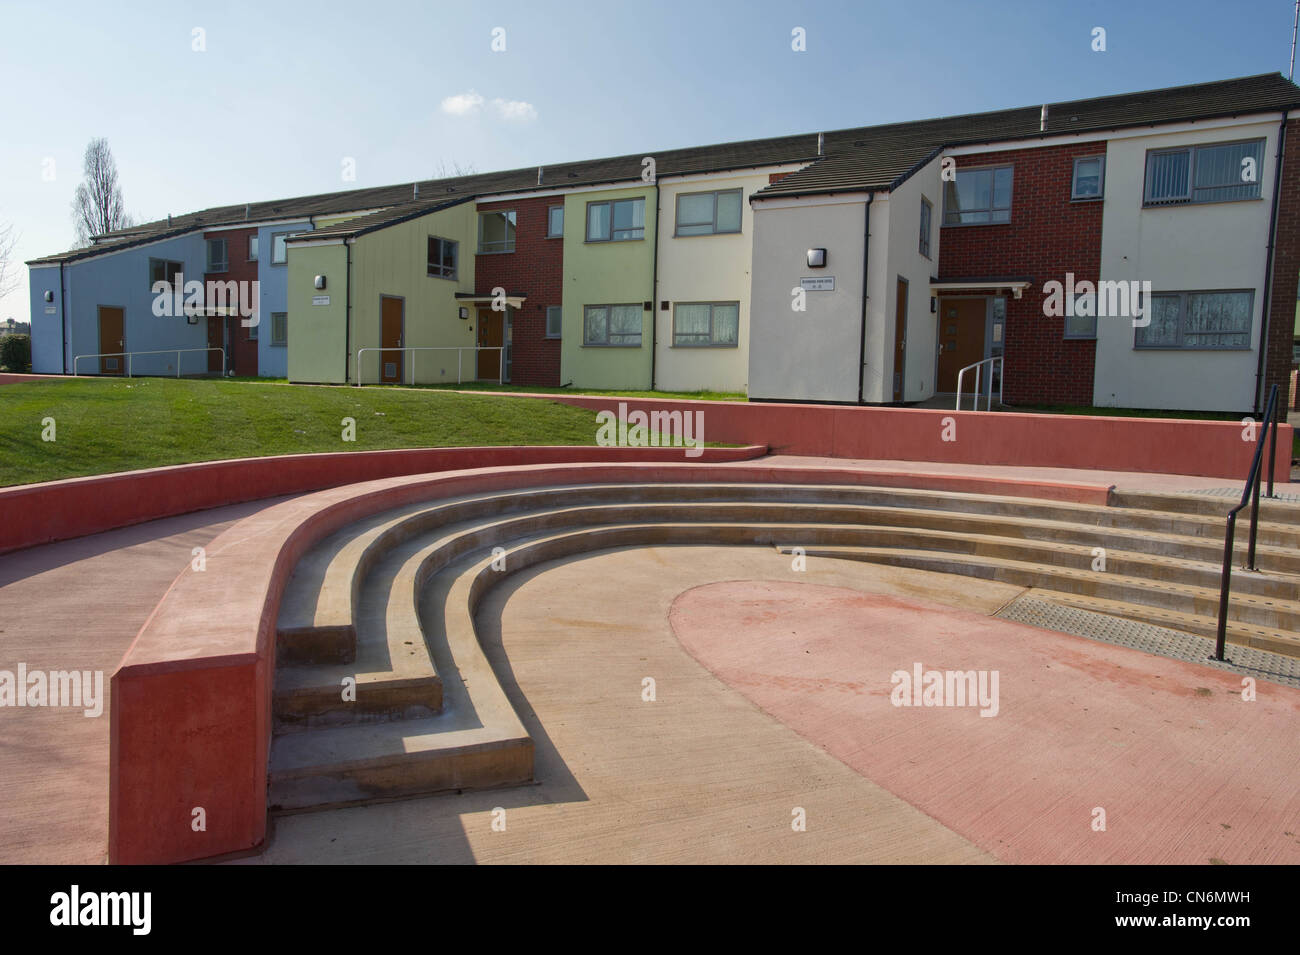 Public space on a new build social housing project Stock Photo